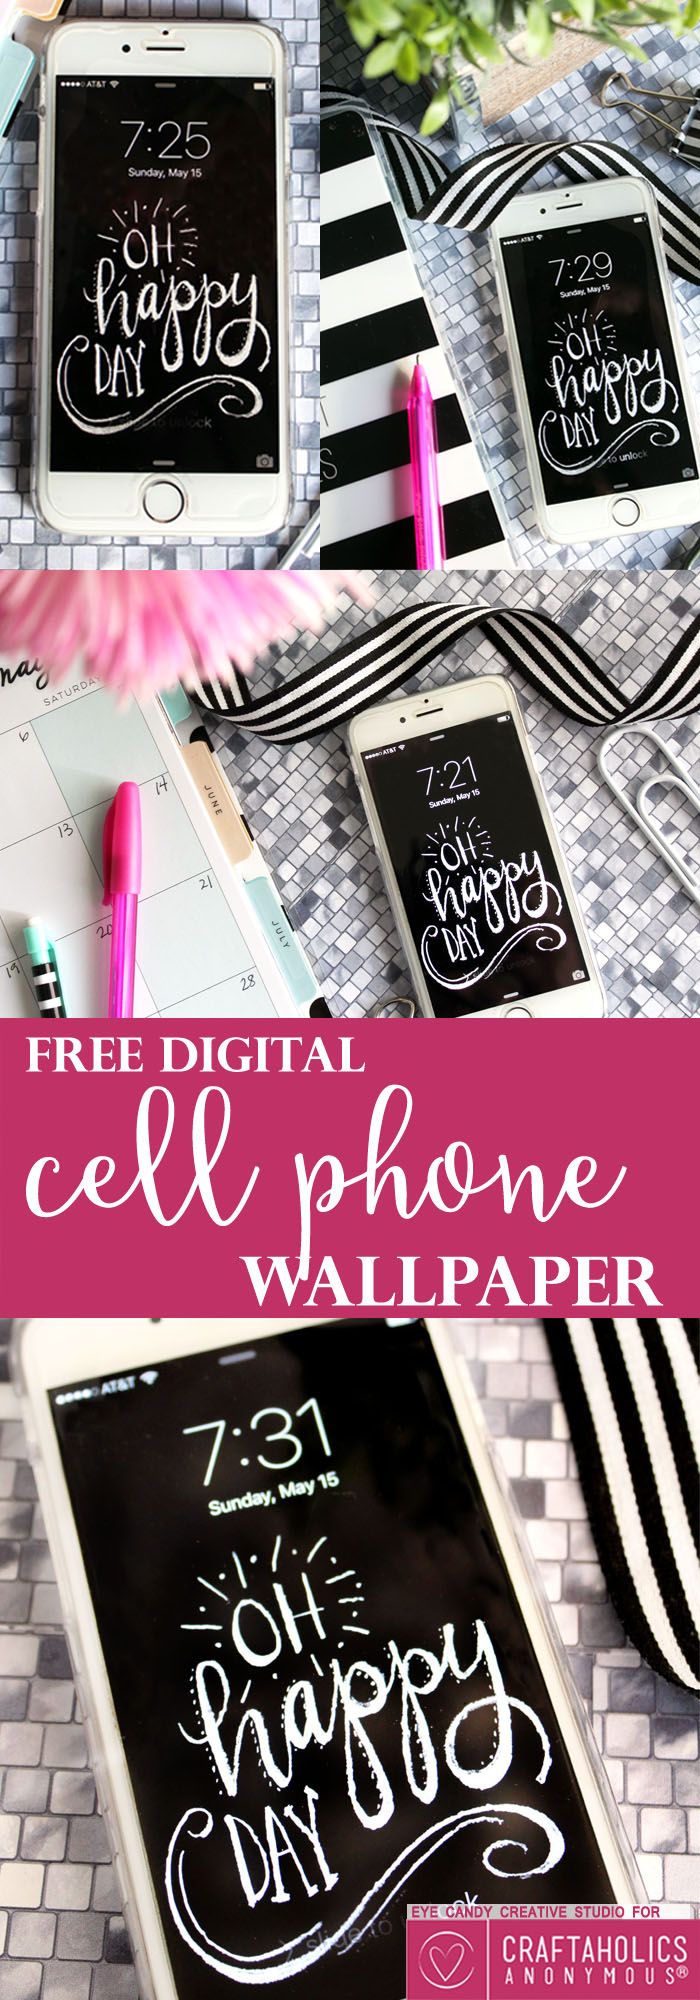 Cute chalkboard cell phone wallpaper download from Craftaholics Anonymous®